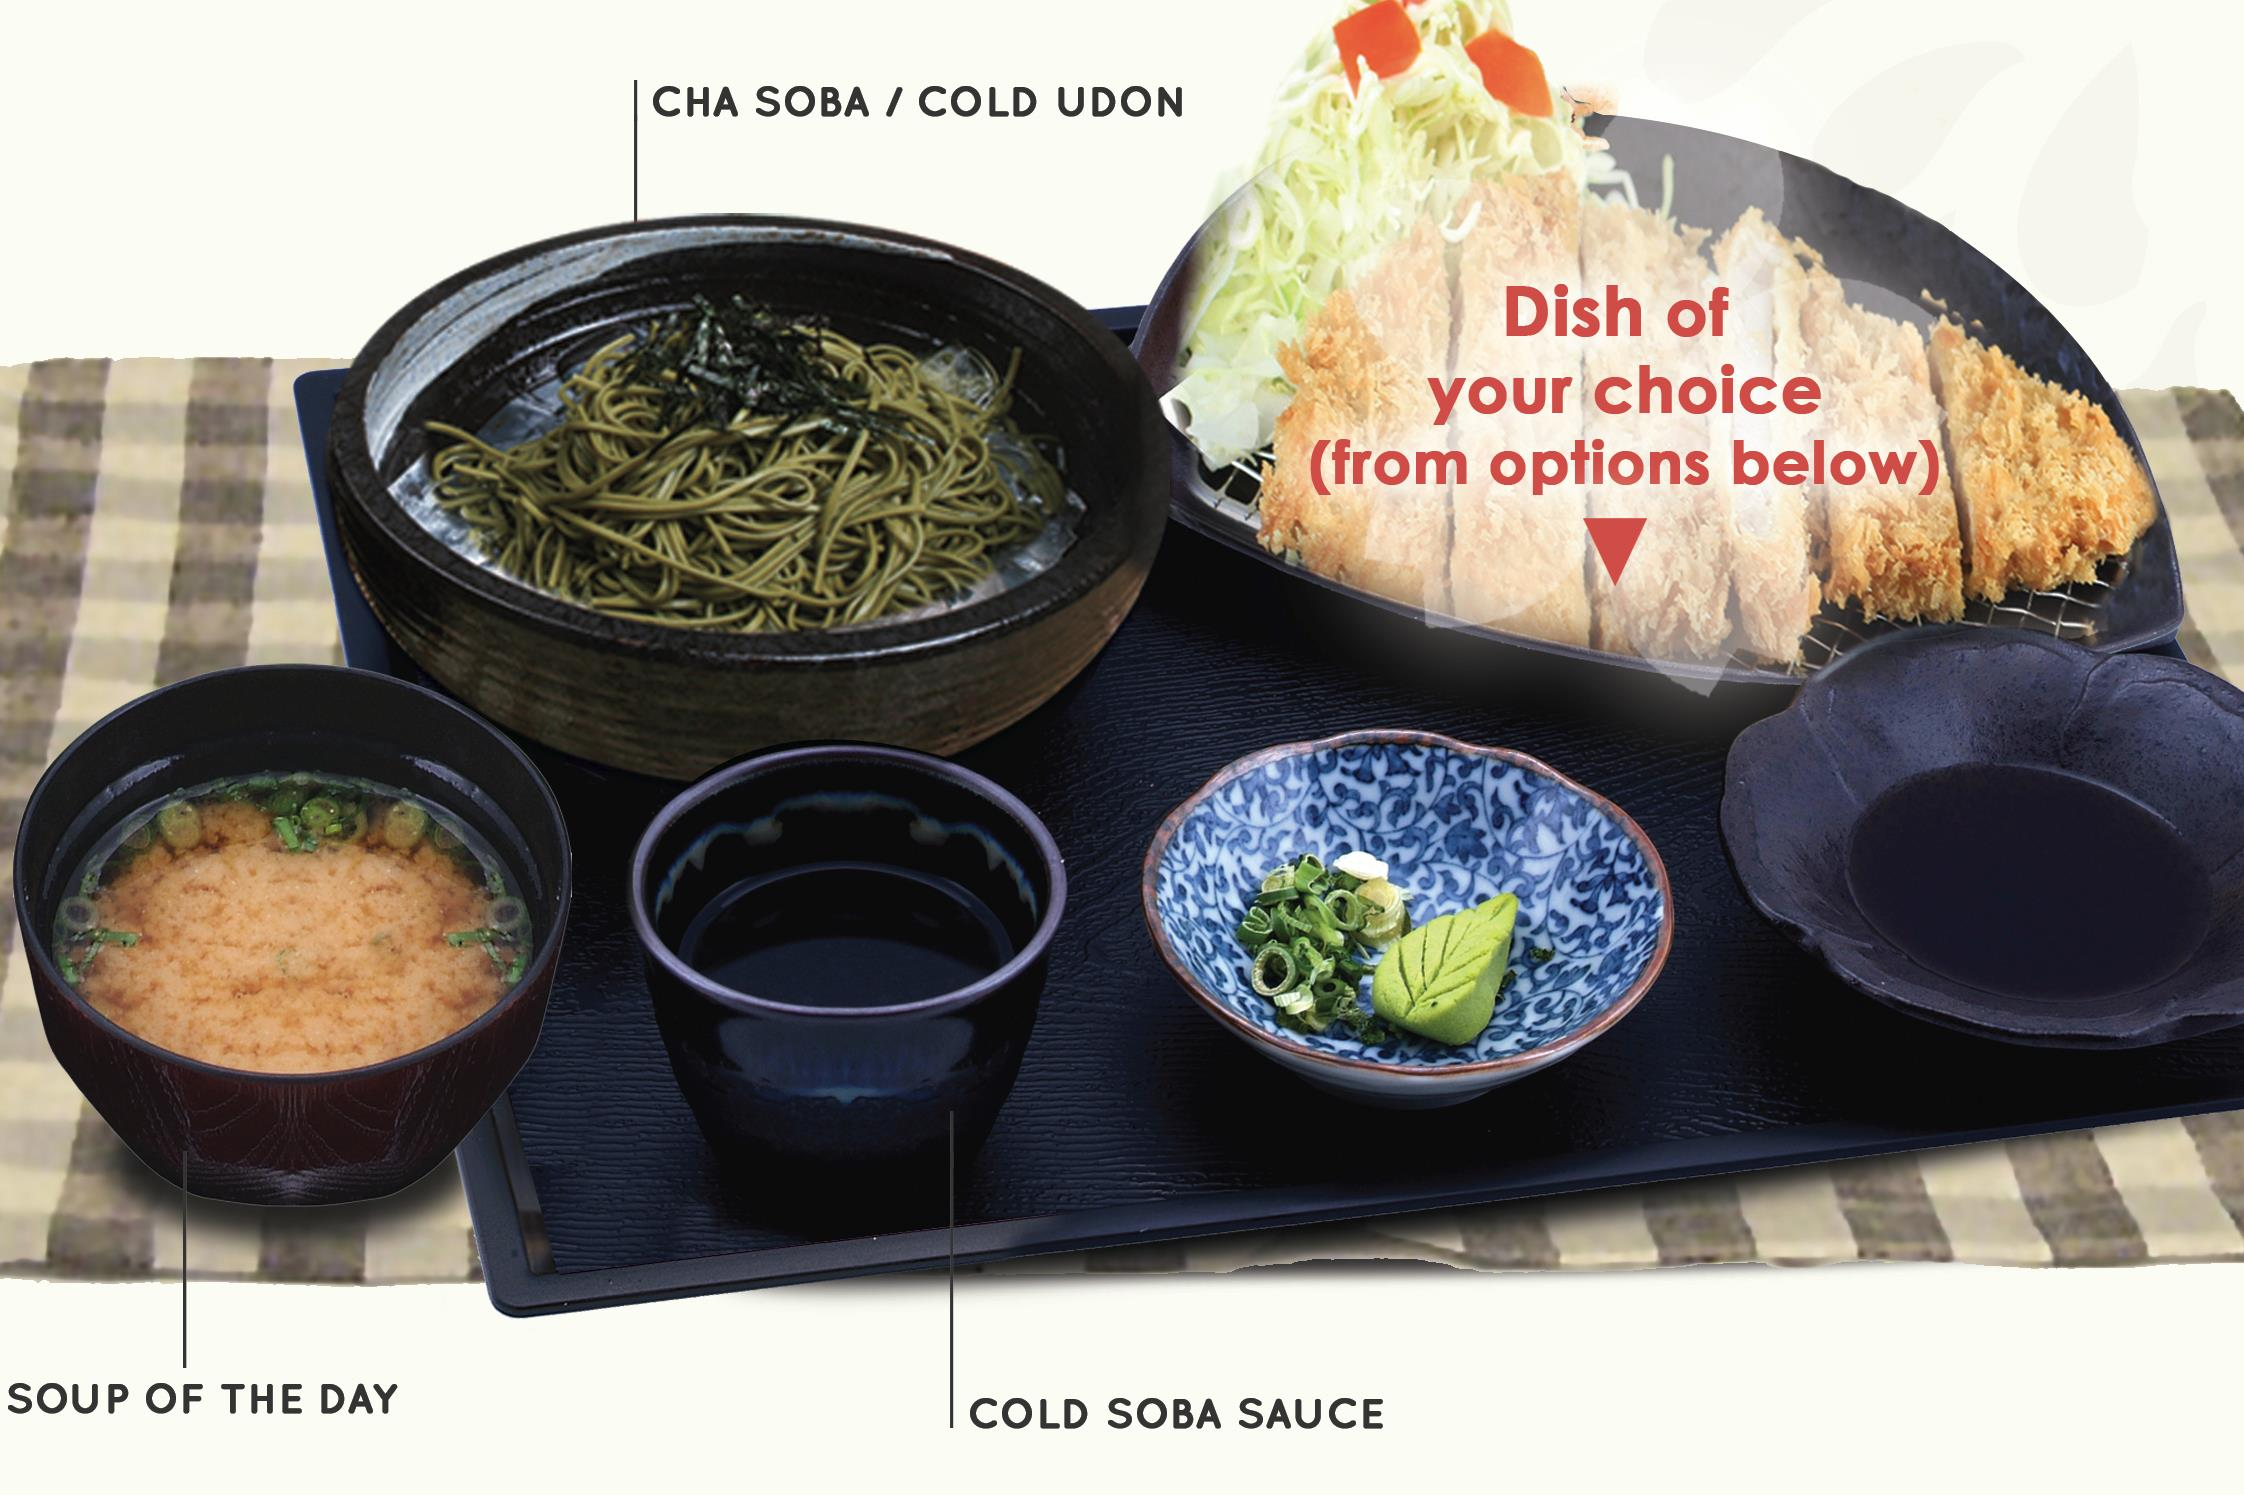 COLD SOBA & UDON SET MEAL